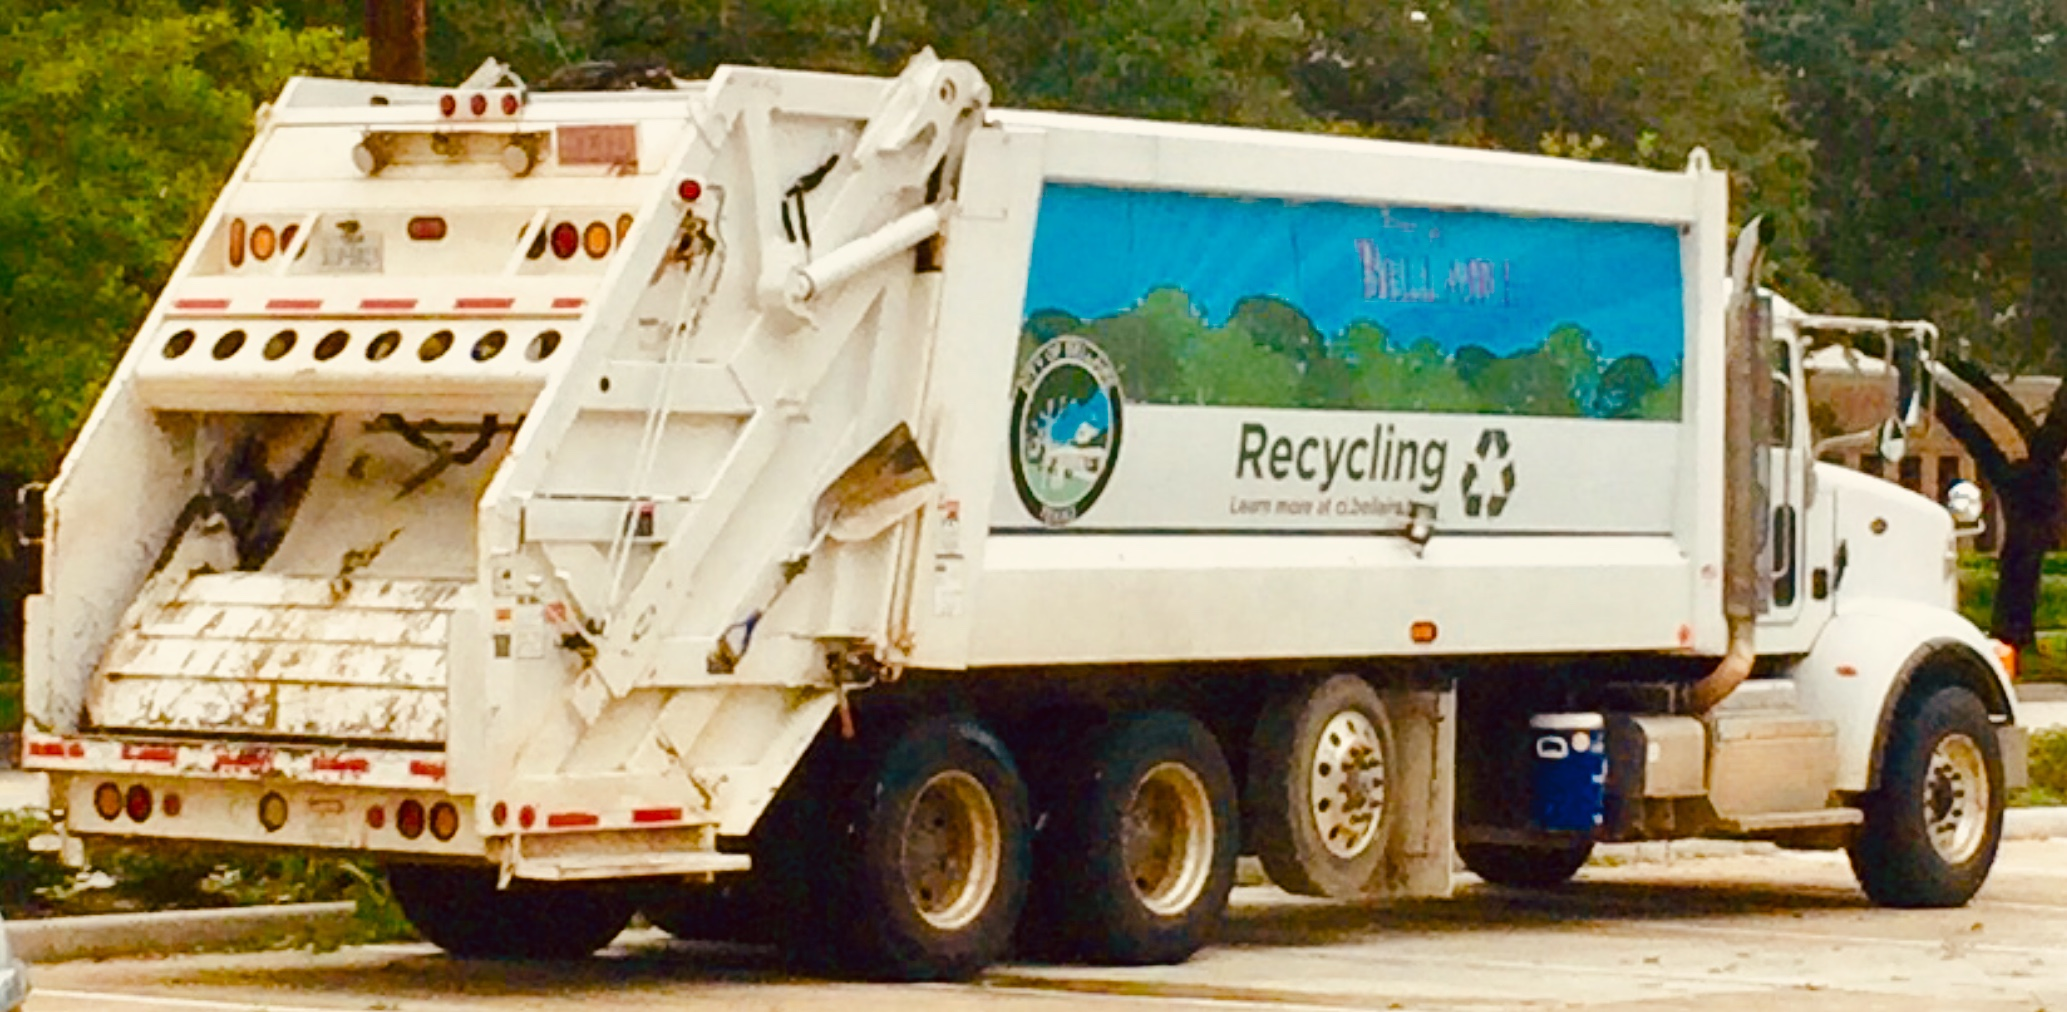 Bellaire information session will address critical do's and don'ts of curbside recycling